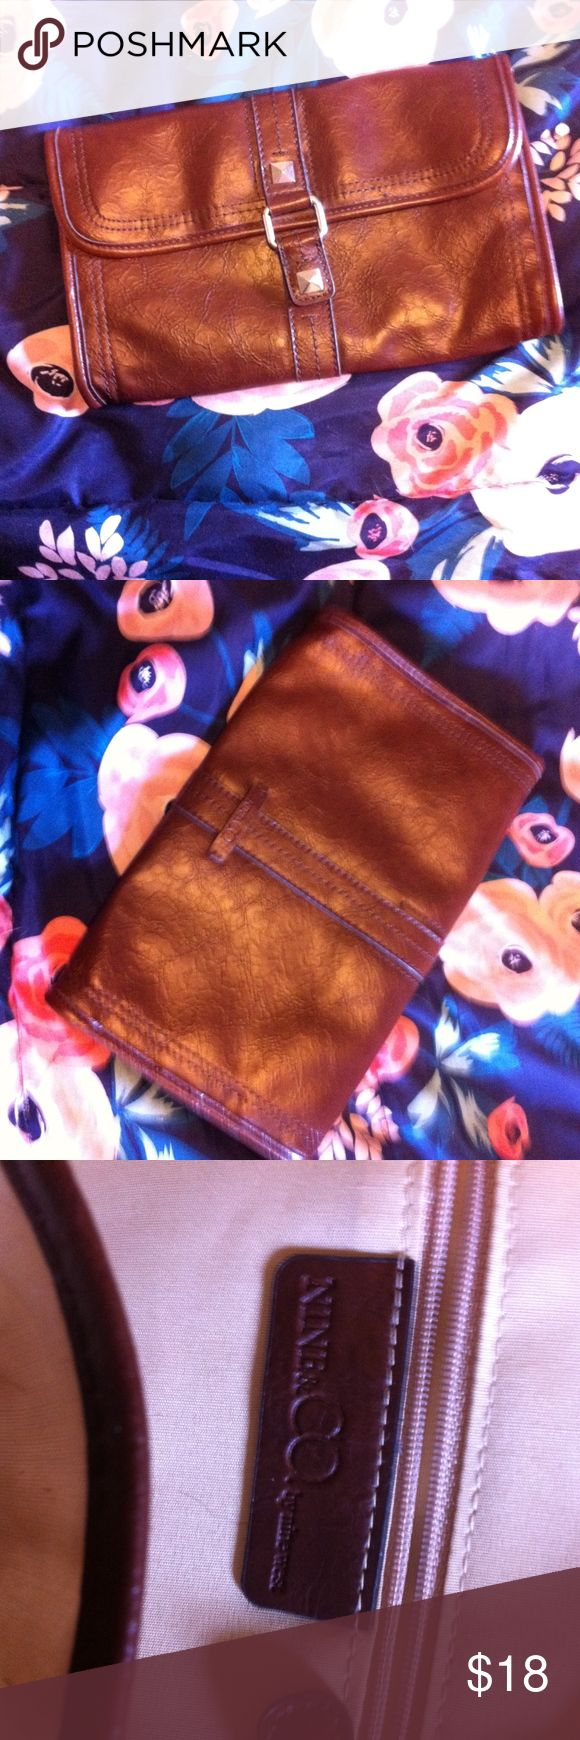 Nine & Co. Faux Leather Brown Clutch Make me an offer on this item! All $6 items are final price, however they are Buy 1 Get 1 Free! Free Gift With Purchase. Bundle & Save, 3+ items gets you 15% off!  Condition: Preowned Made In: 2000s Flaws: None Unique Details: Clutch style Closure Details: Clasp Retails For: $25 Brand: Nine & Co. Color: Brown & Silver  Questions? Comments? Concerns? Message me!  SMOKE FREE HOME! Comes from a home with pets. Wrapped & Shipped with care. Nine & Co. Bags…